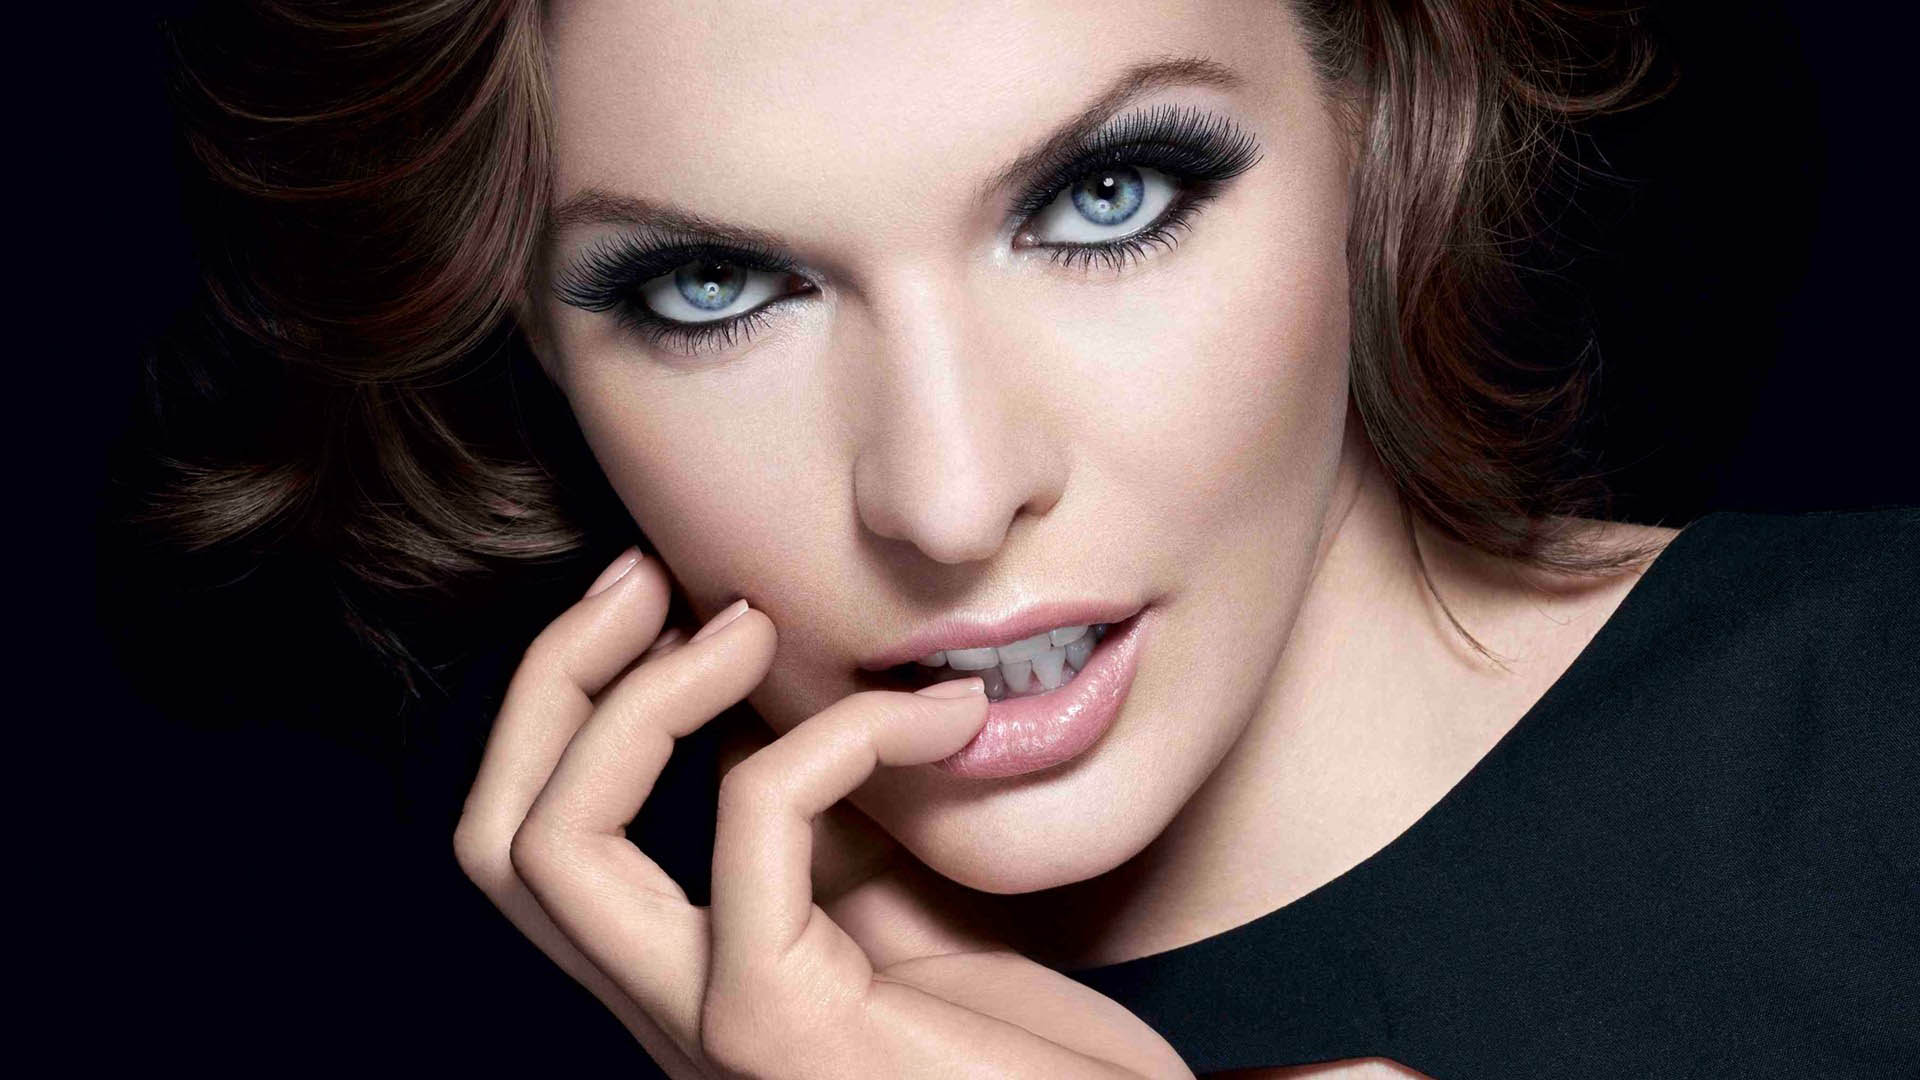 Milla Jovovich Wallpapers - Wallpaper Cave